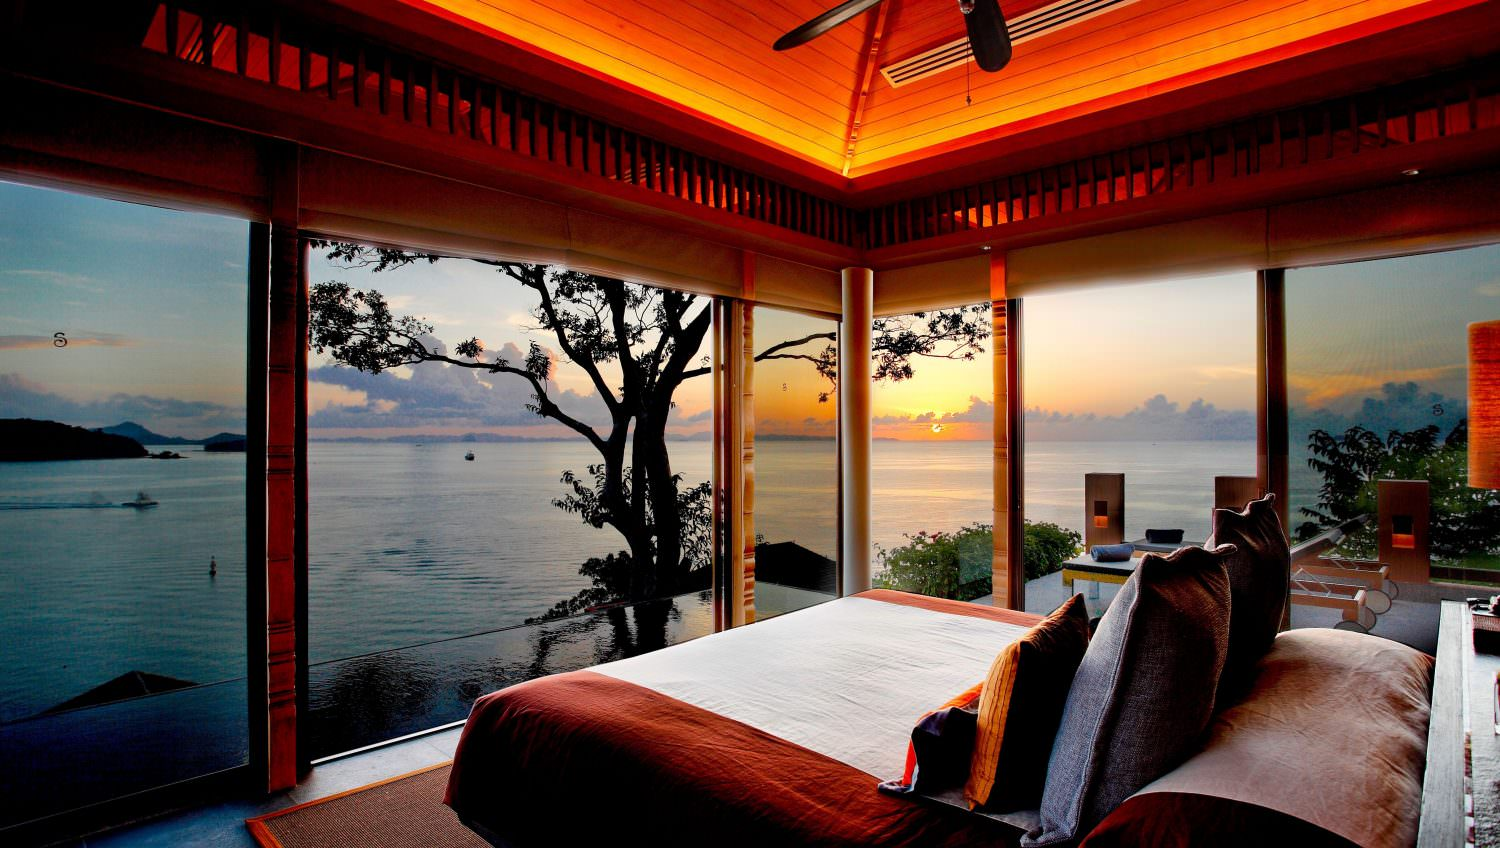 3-One-Bedroom-Luxury-Pool-Villa-Ocean-View-B-Sri-Panwa-Hotel-Phuket-Resort-Spa